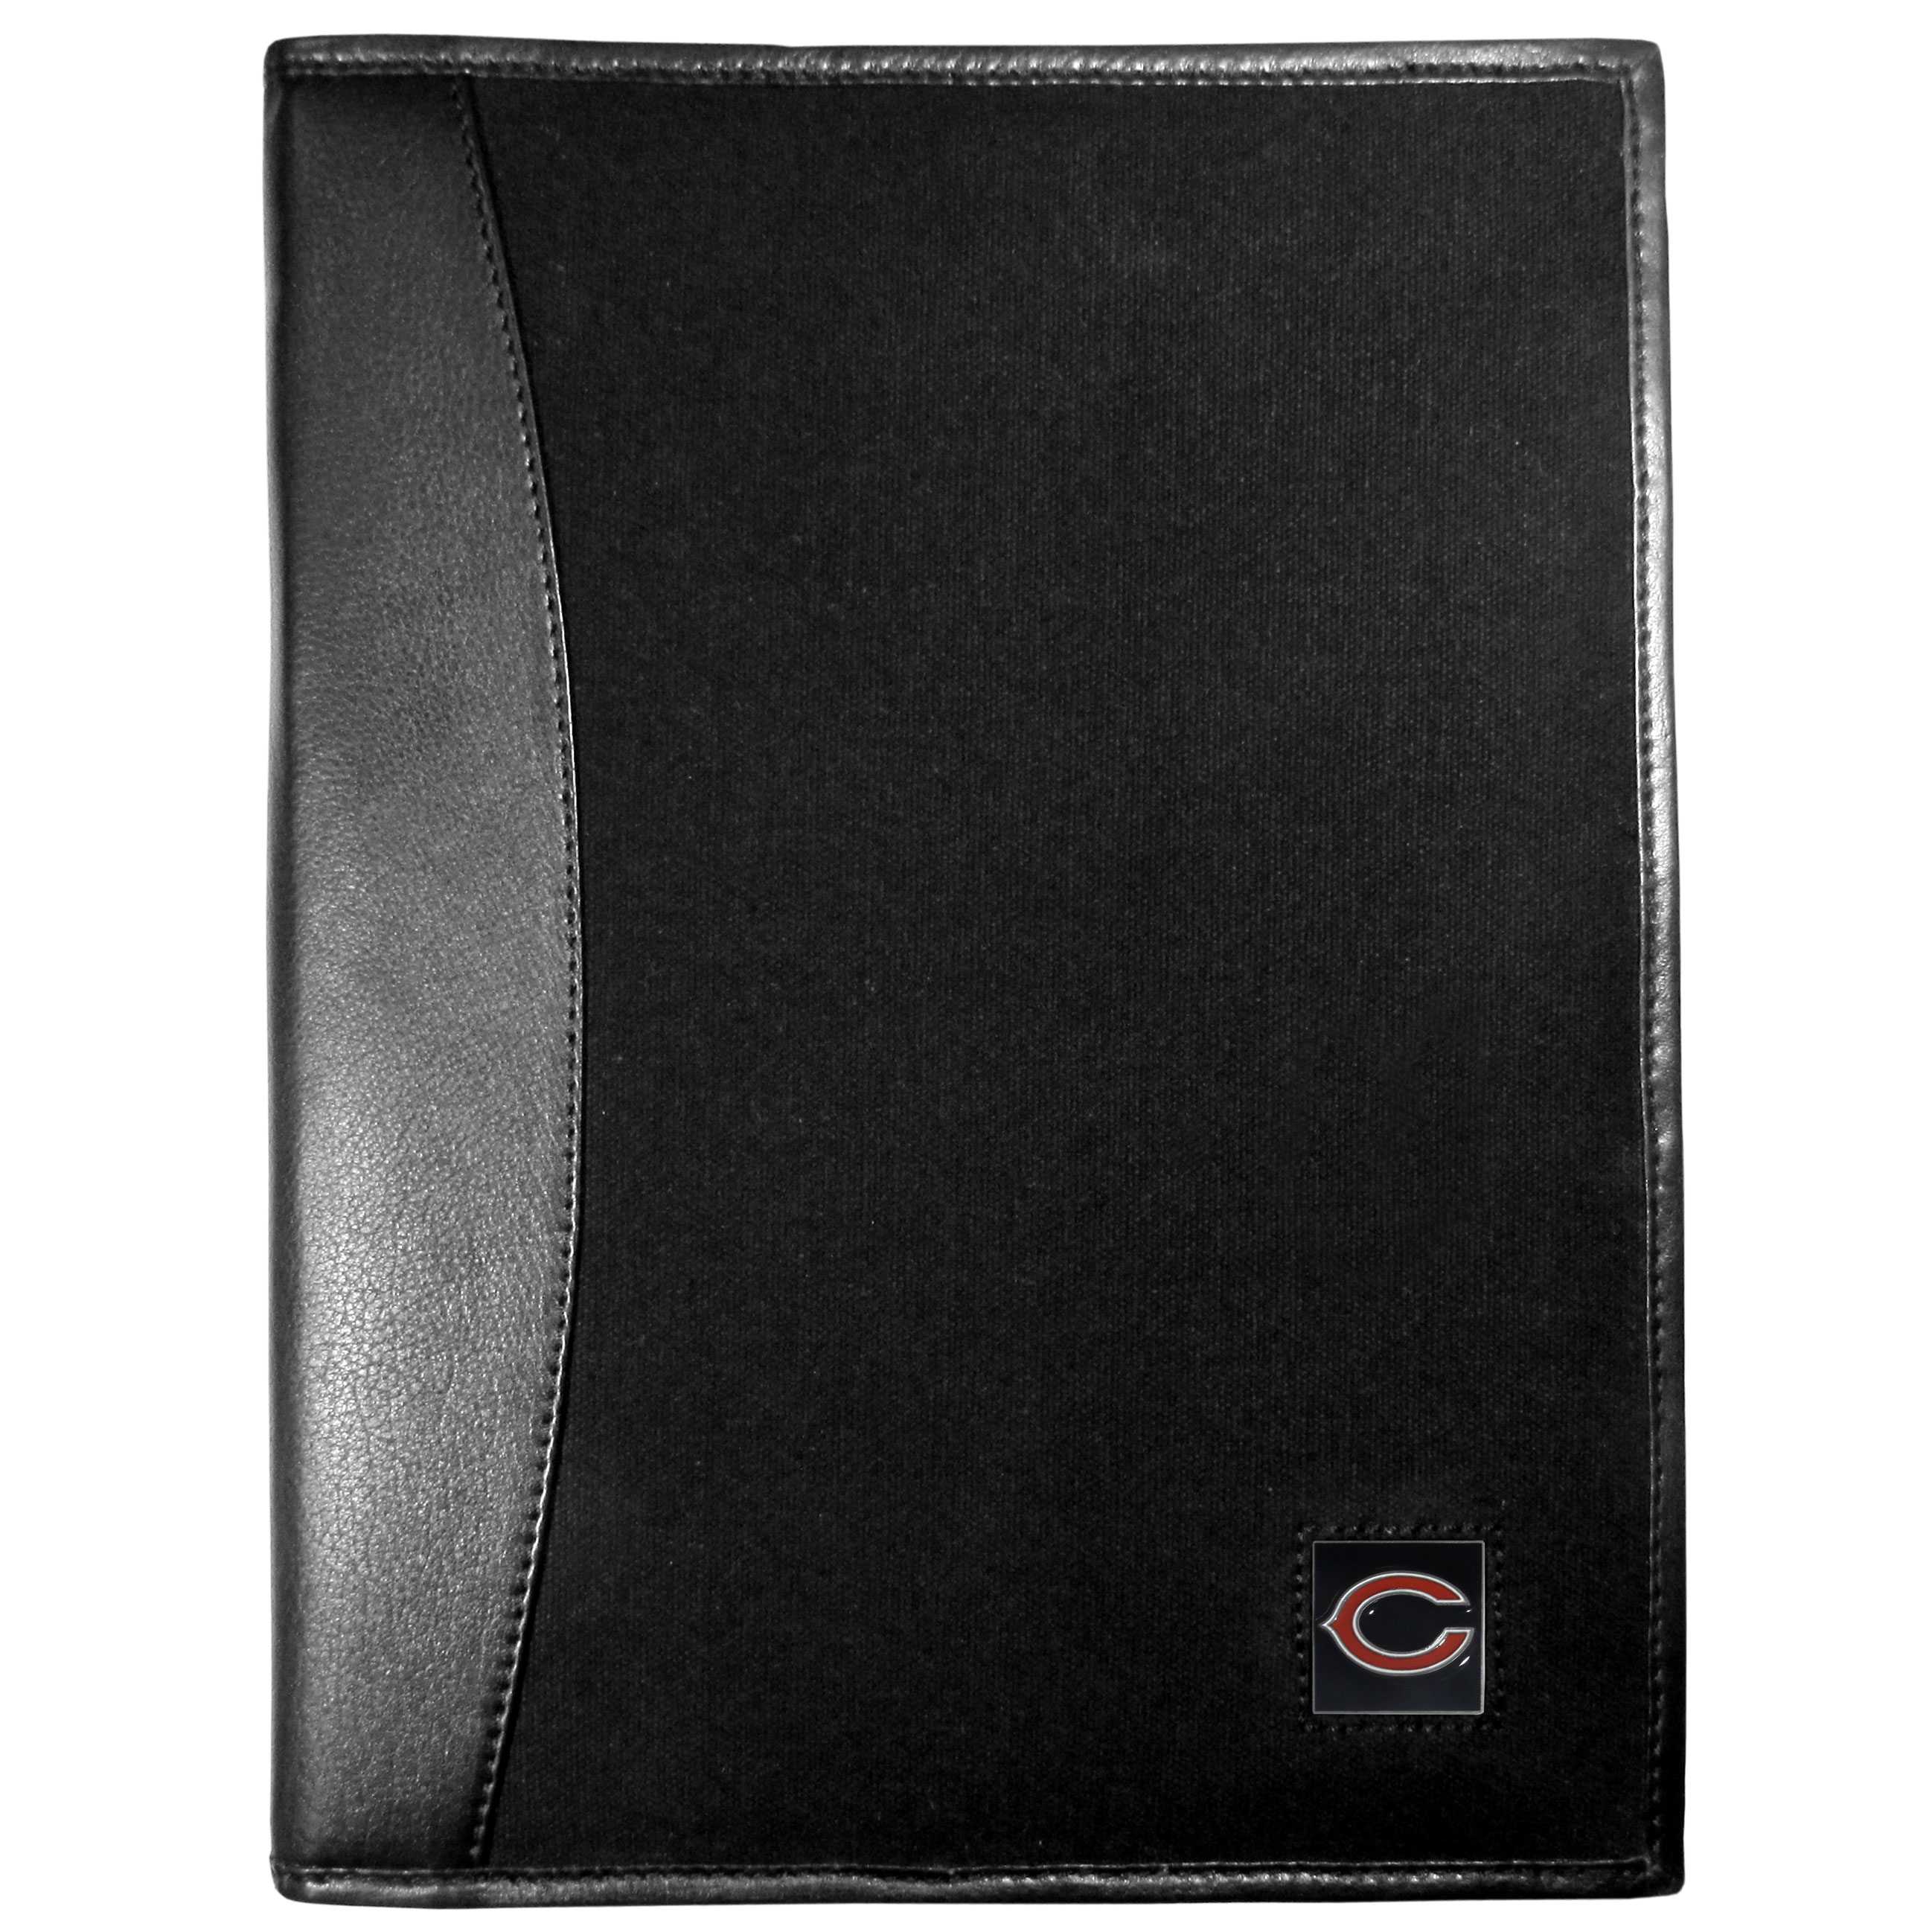 Chicago Bears Leather and Canvas Padfolio - Our leather and canvas padfolio perfectly blends form and function. The attractive portfolio is bound in fine grain leather with an attractive canvas finish and the interior is a soft nylon. This high quality business accessory also features a fully cast metal Chicago Bears emblem that is subtly set in the corner of the organizer. It is packed with features like 6 card slots for badges, business cards, hotel keys or credit cards and ID with a large pocket for loose papers and a writing tablet slot making it a must-have for the professional on the go.